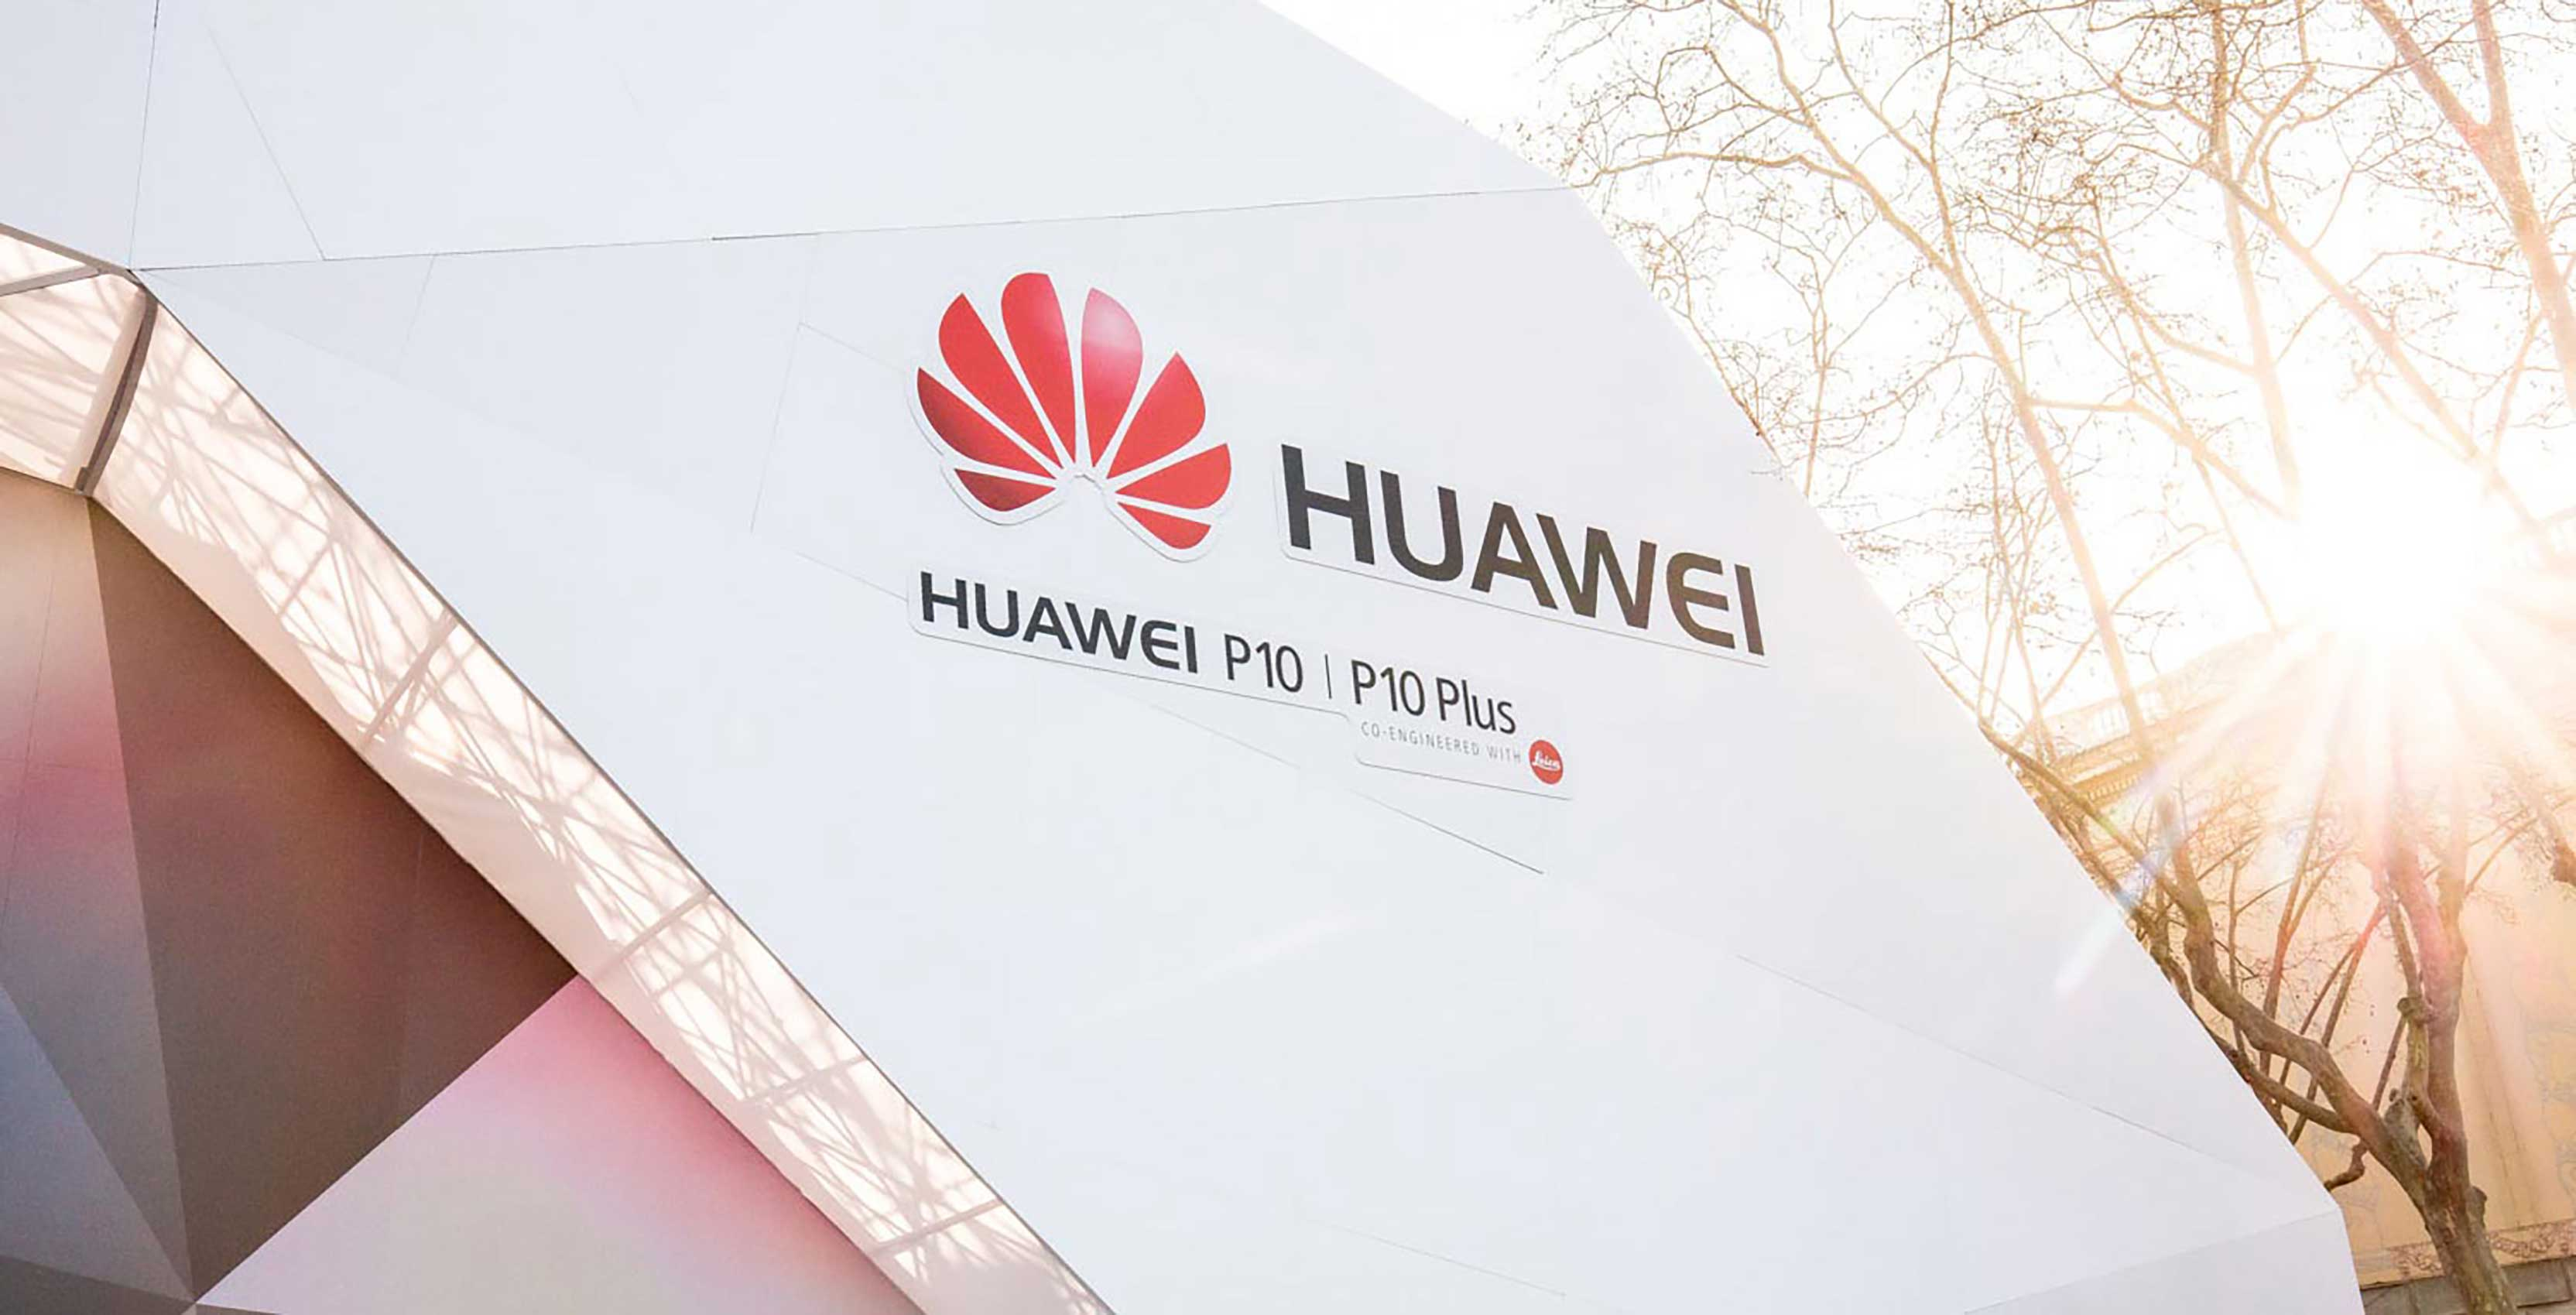 Huawei replaces Apple as world's second-largest smartphone company